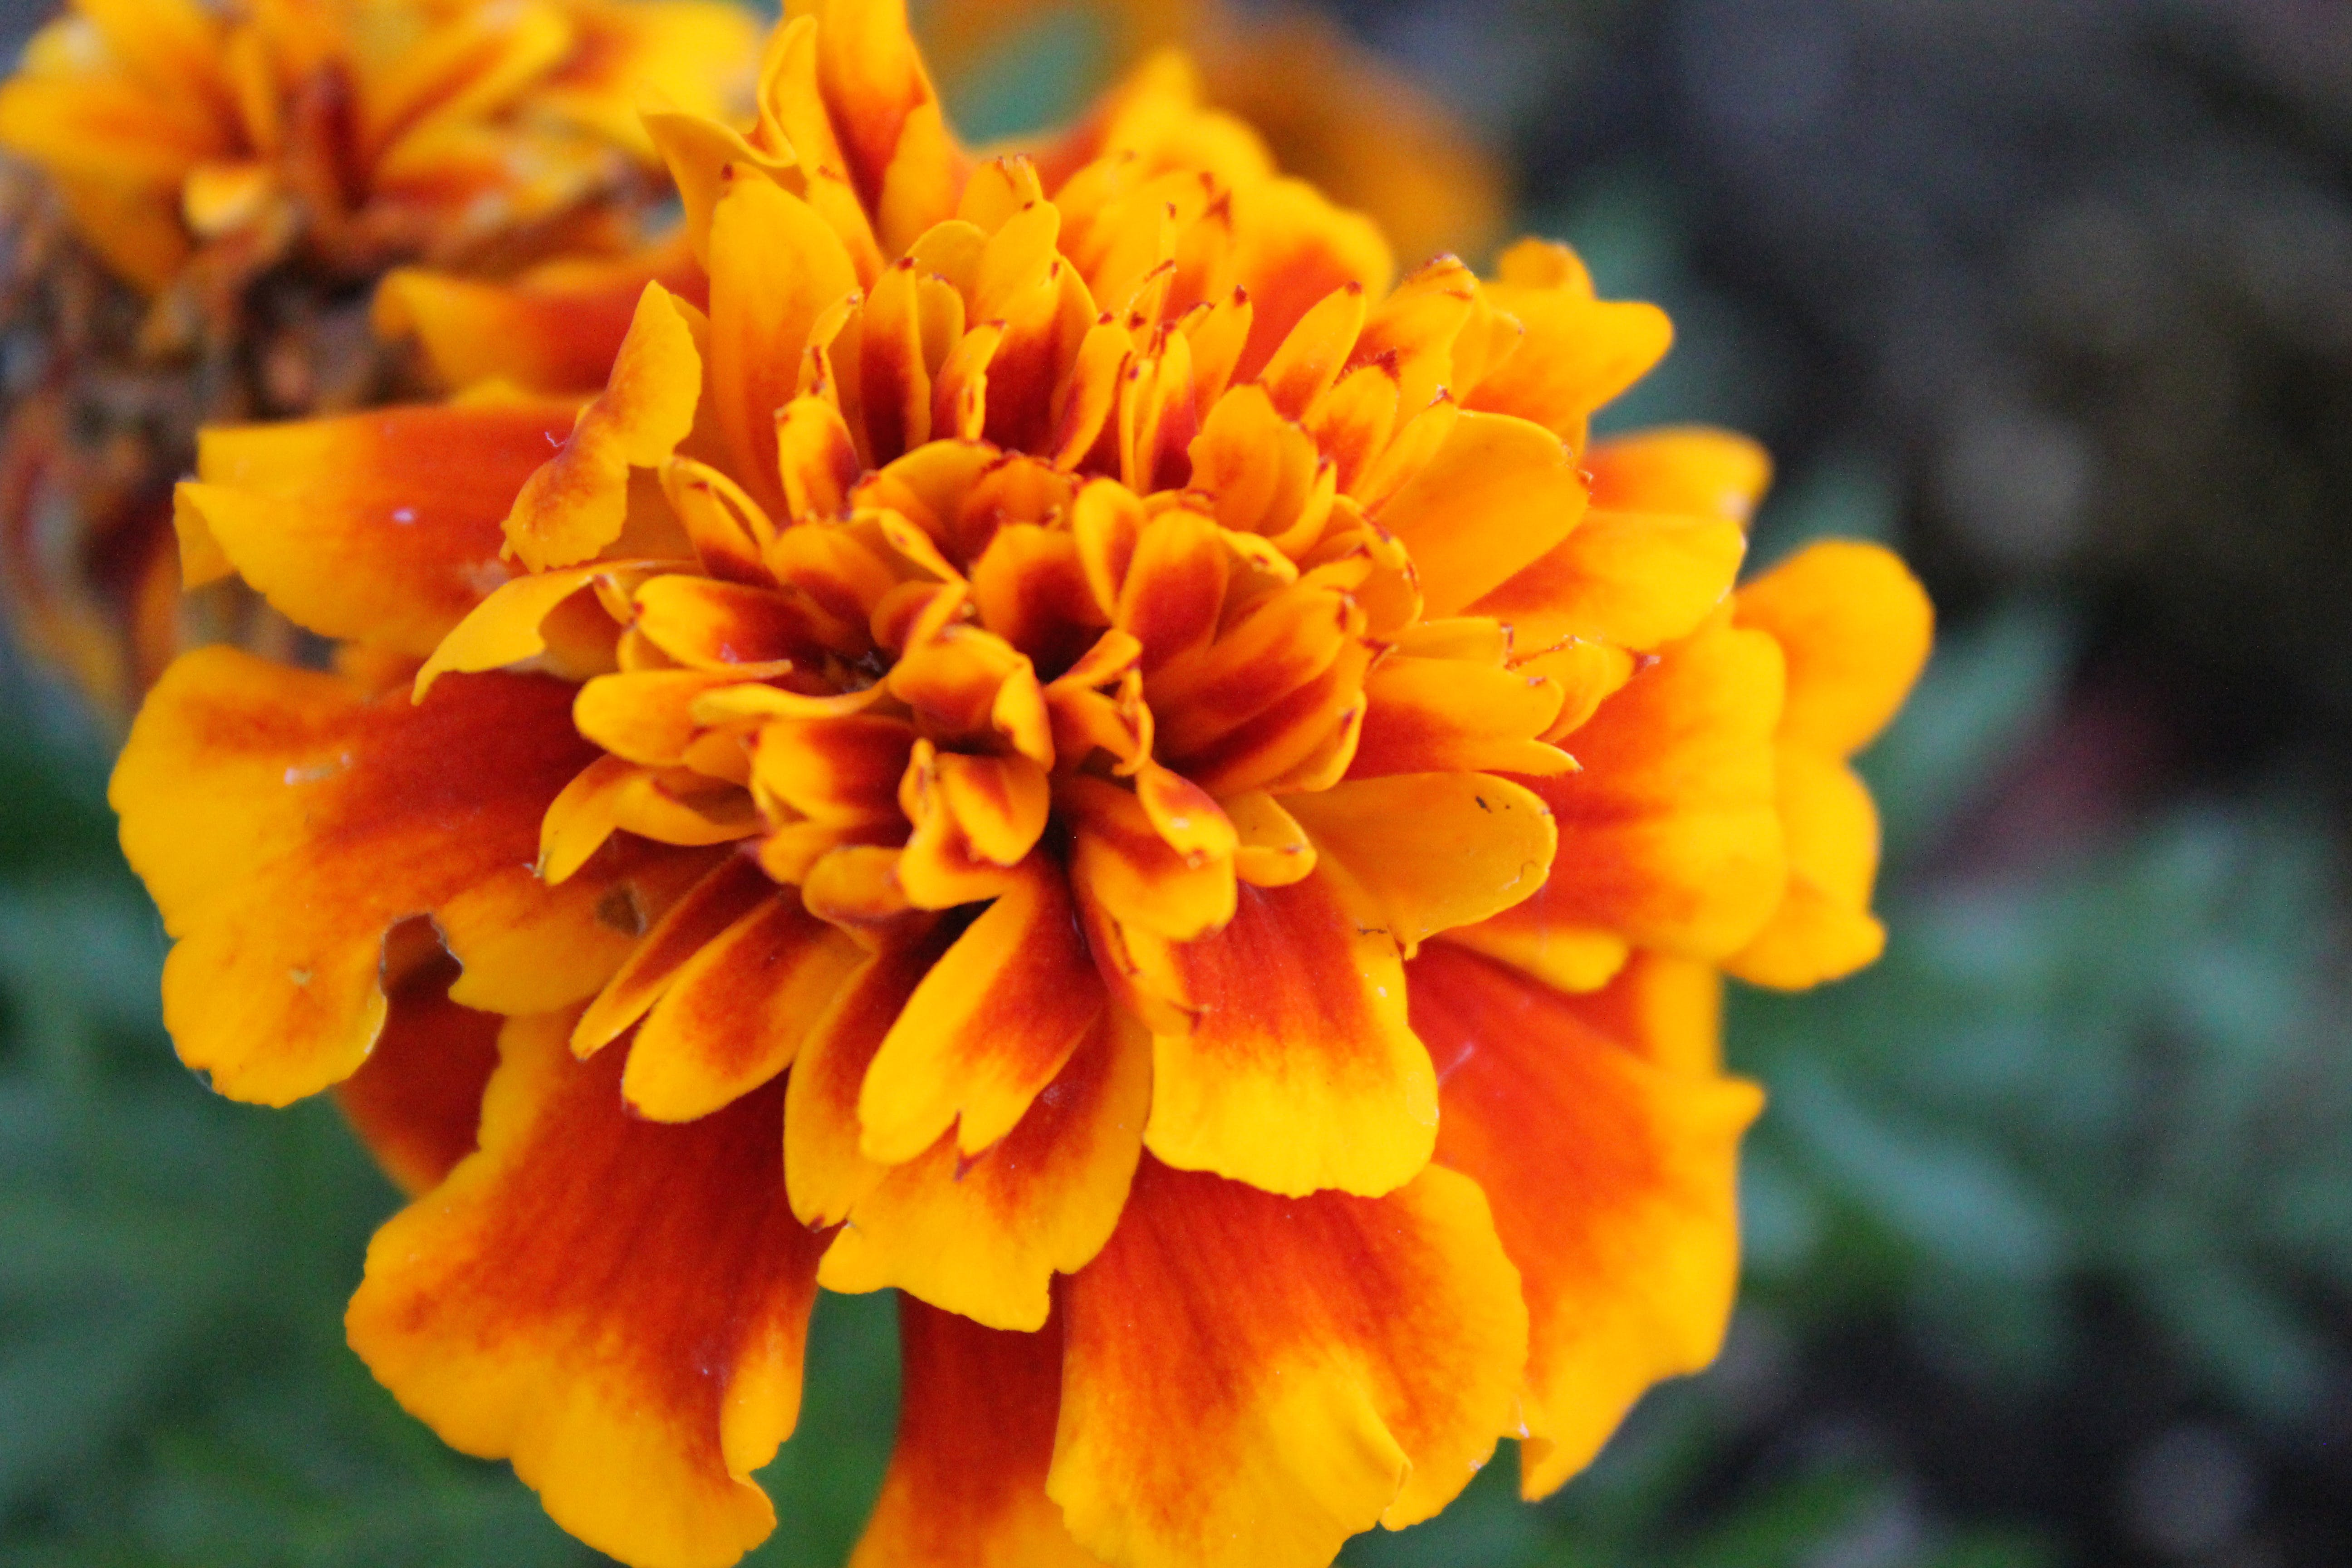 Close-Up Photography of Marigold Flower